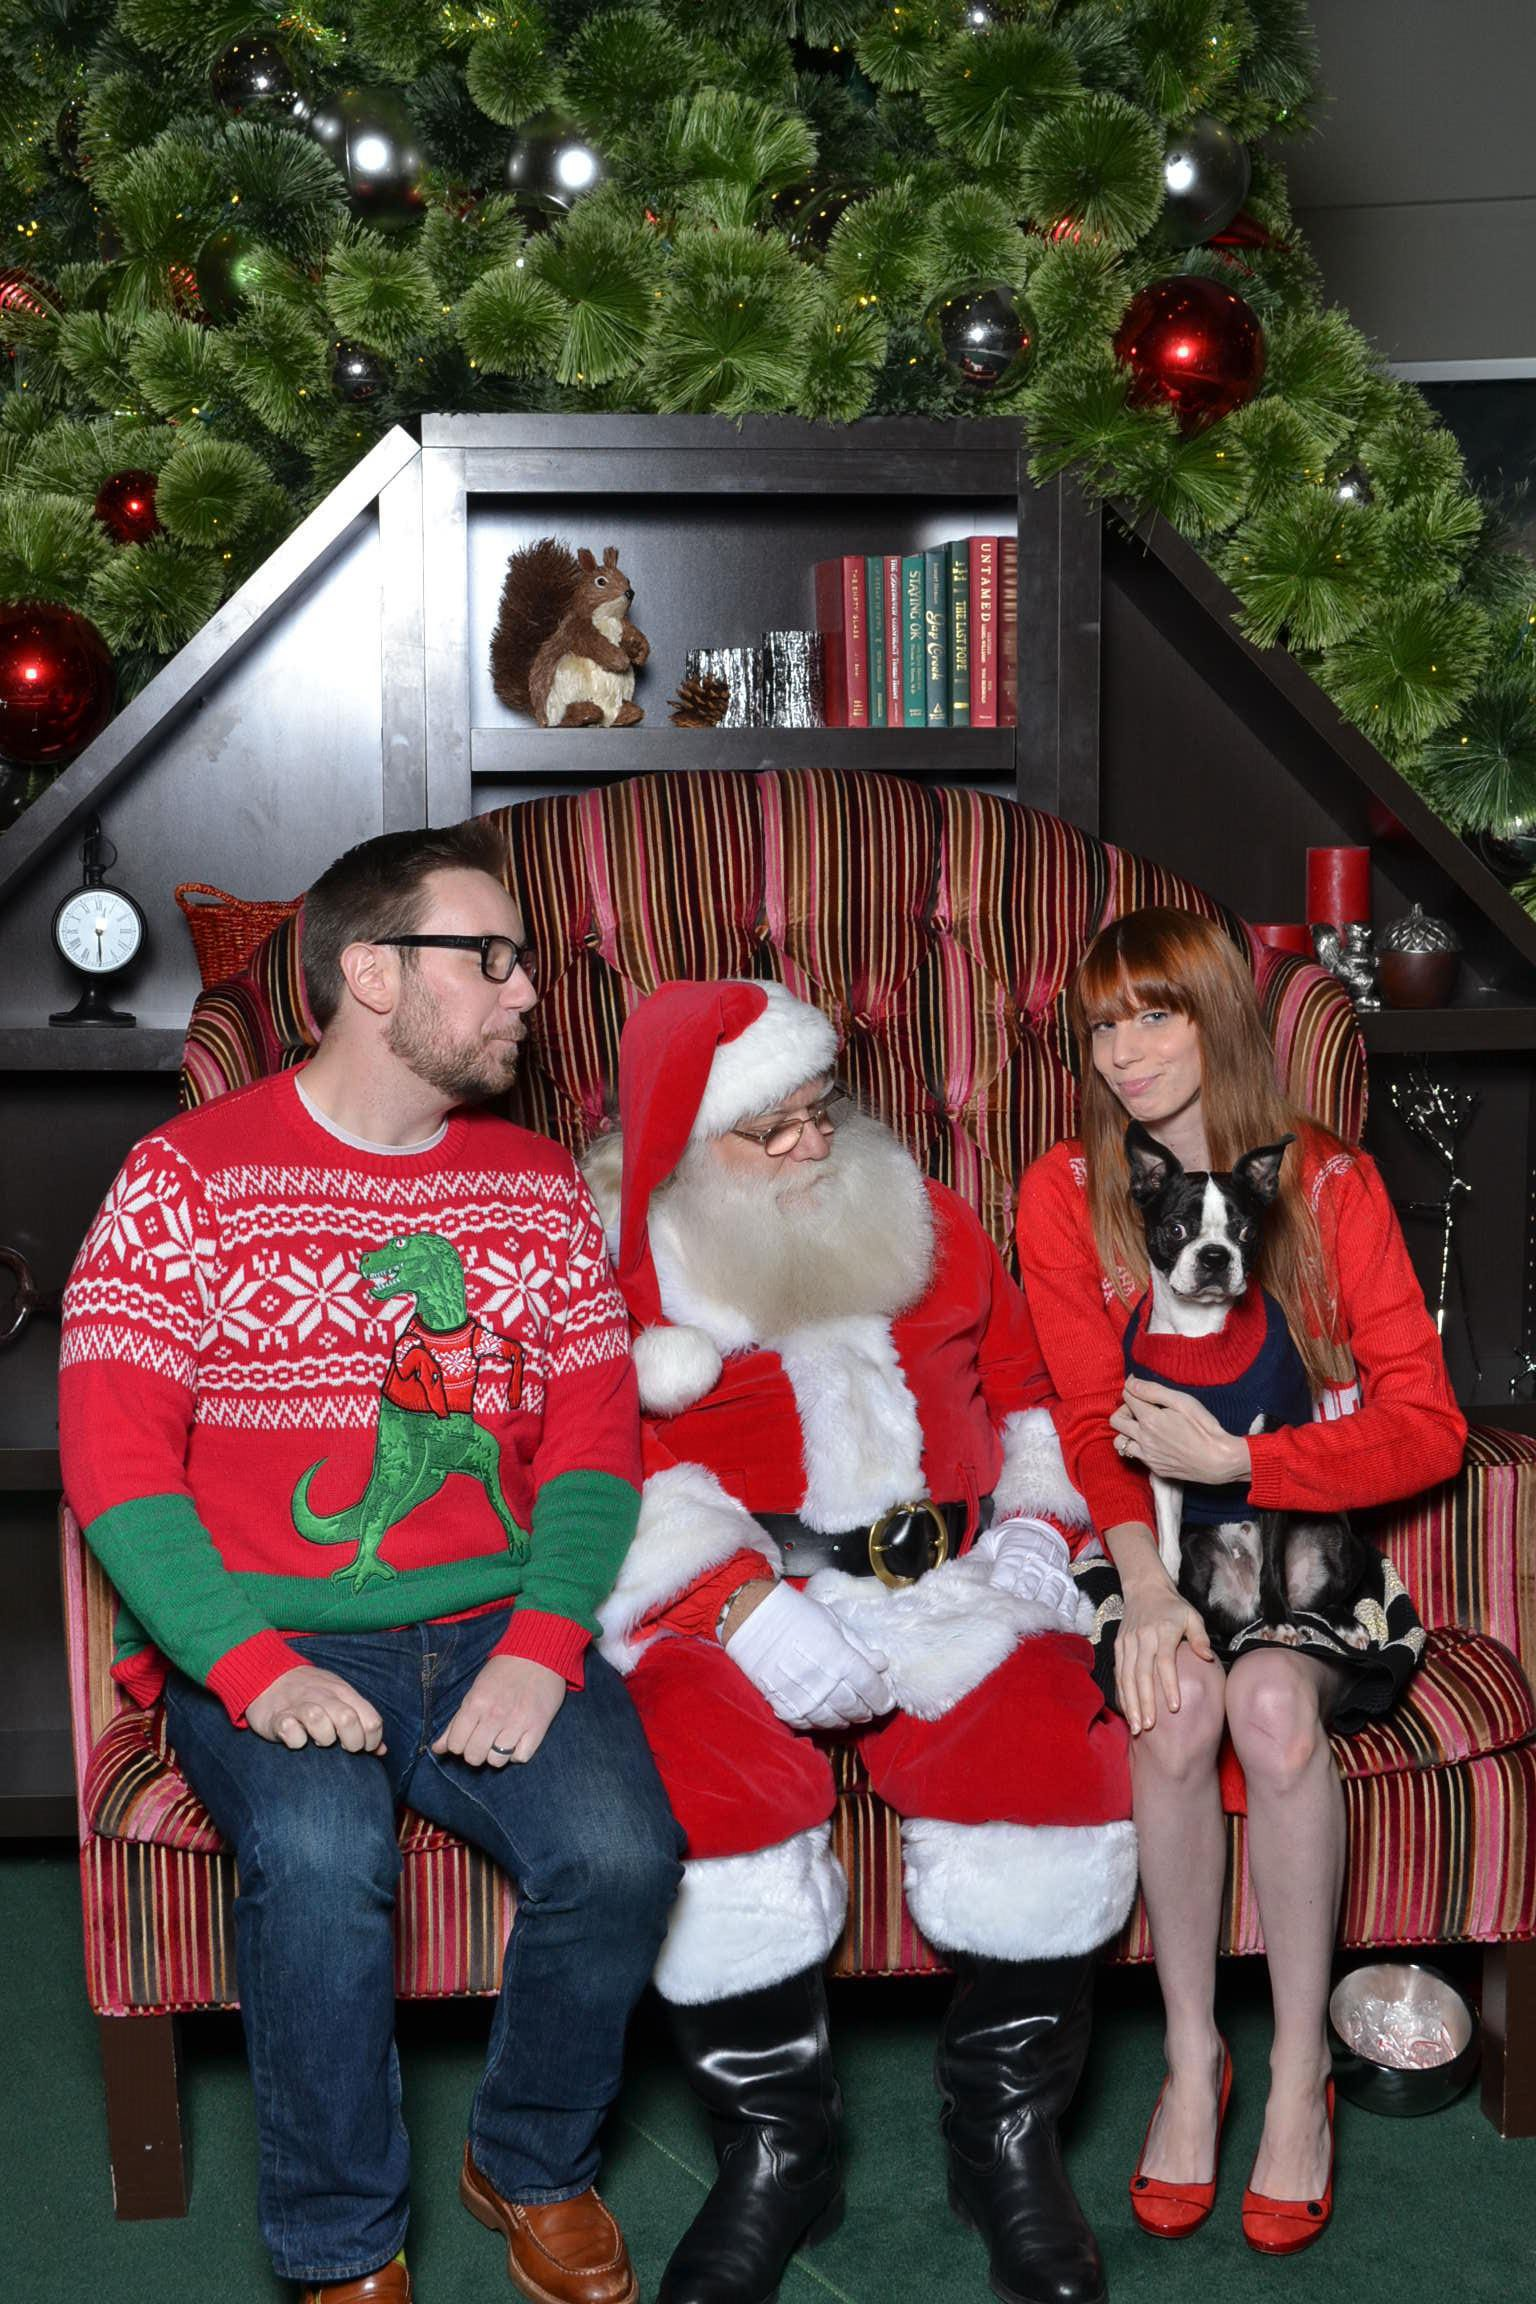 Funny Santa Photo 2k15